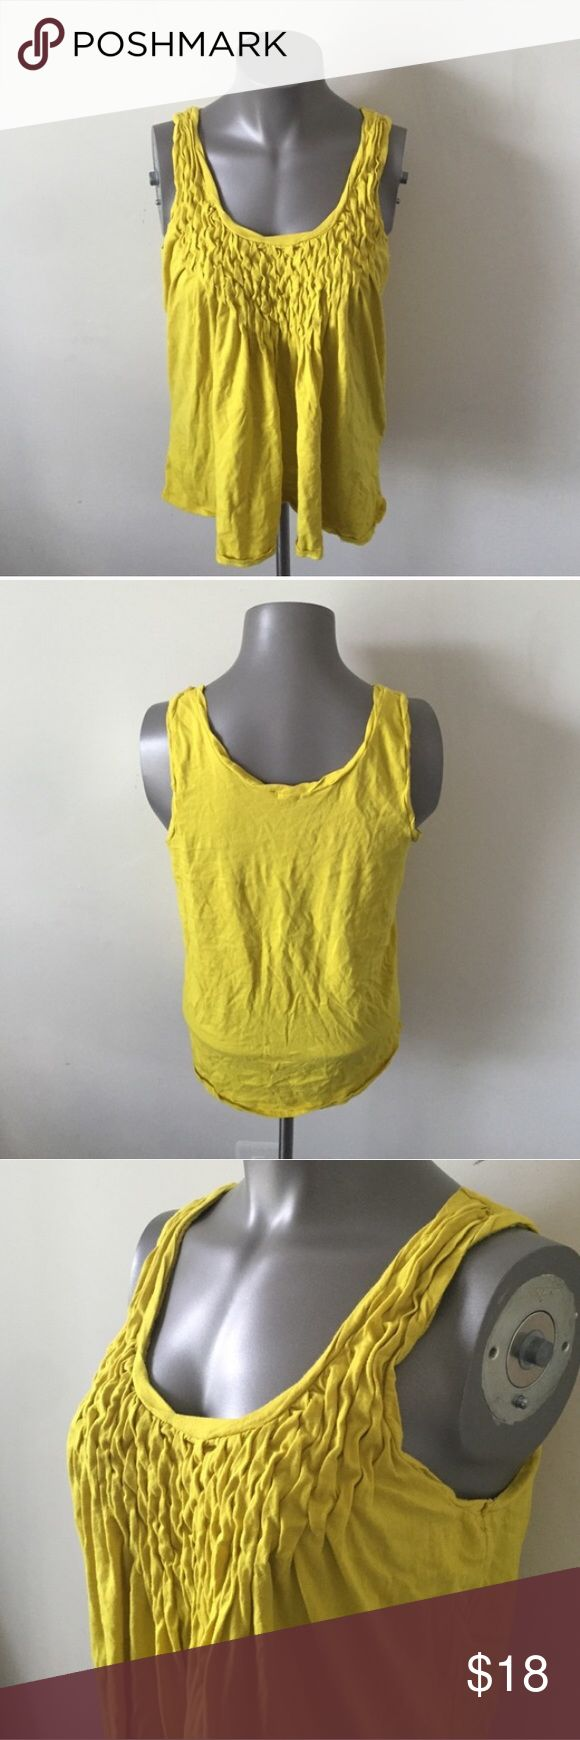 Mustard yellow tank top from J. Crew Beautiful mustard yellow tank top from JCrew, size Medium. J. Crew Tops Tank Tops